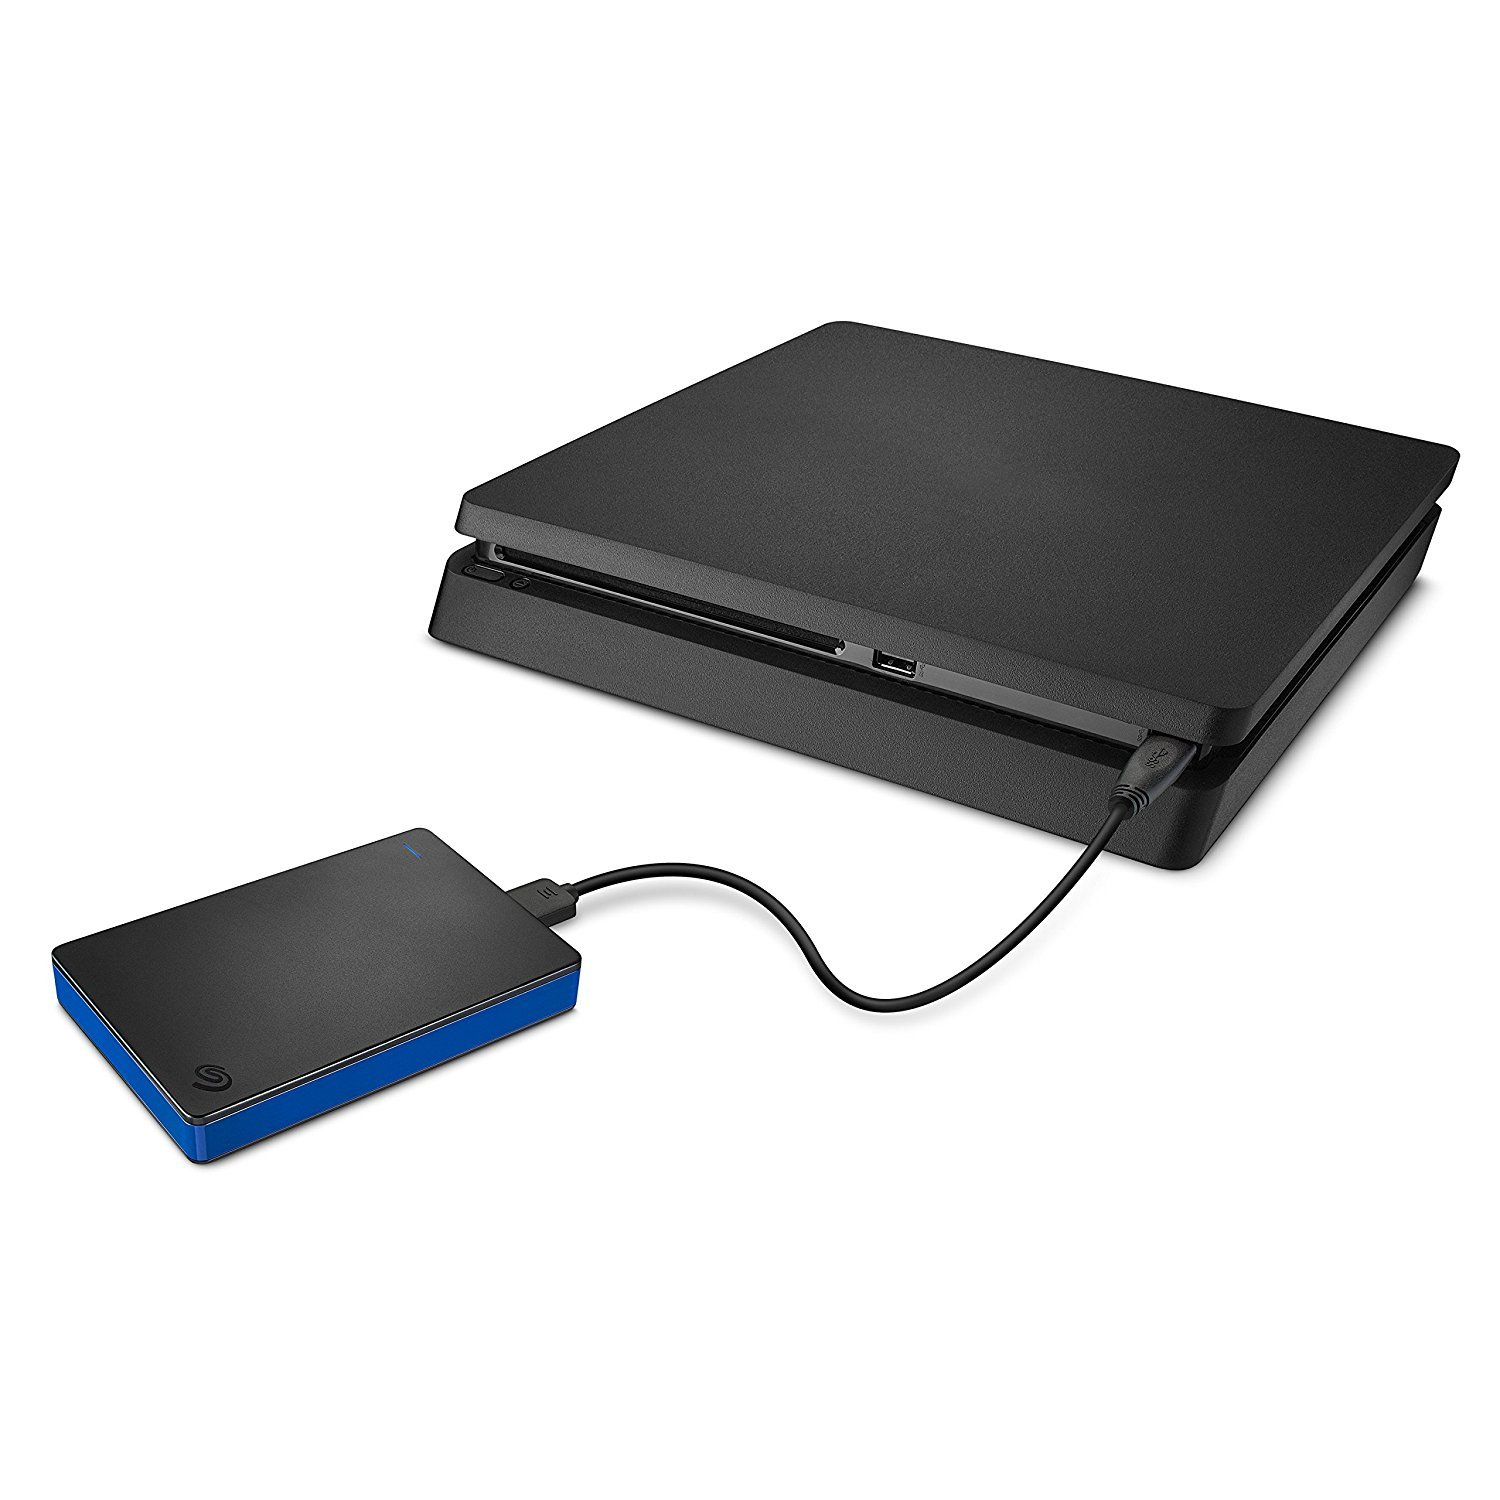 2TB Seagate Game Drive for PlayStation 4 for  image